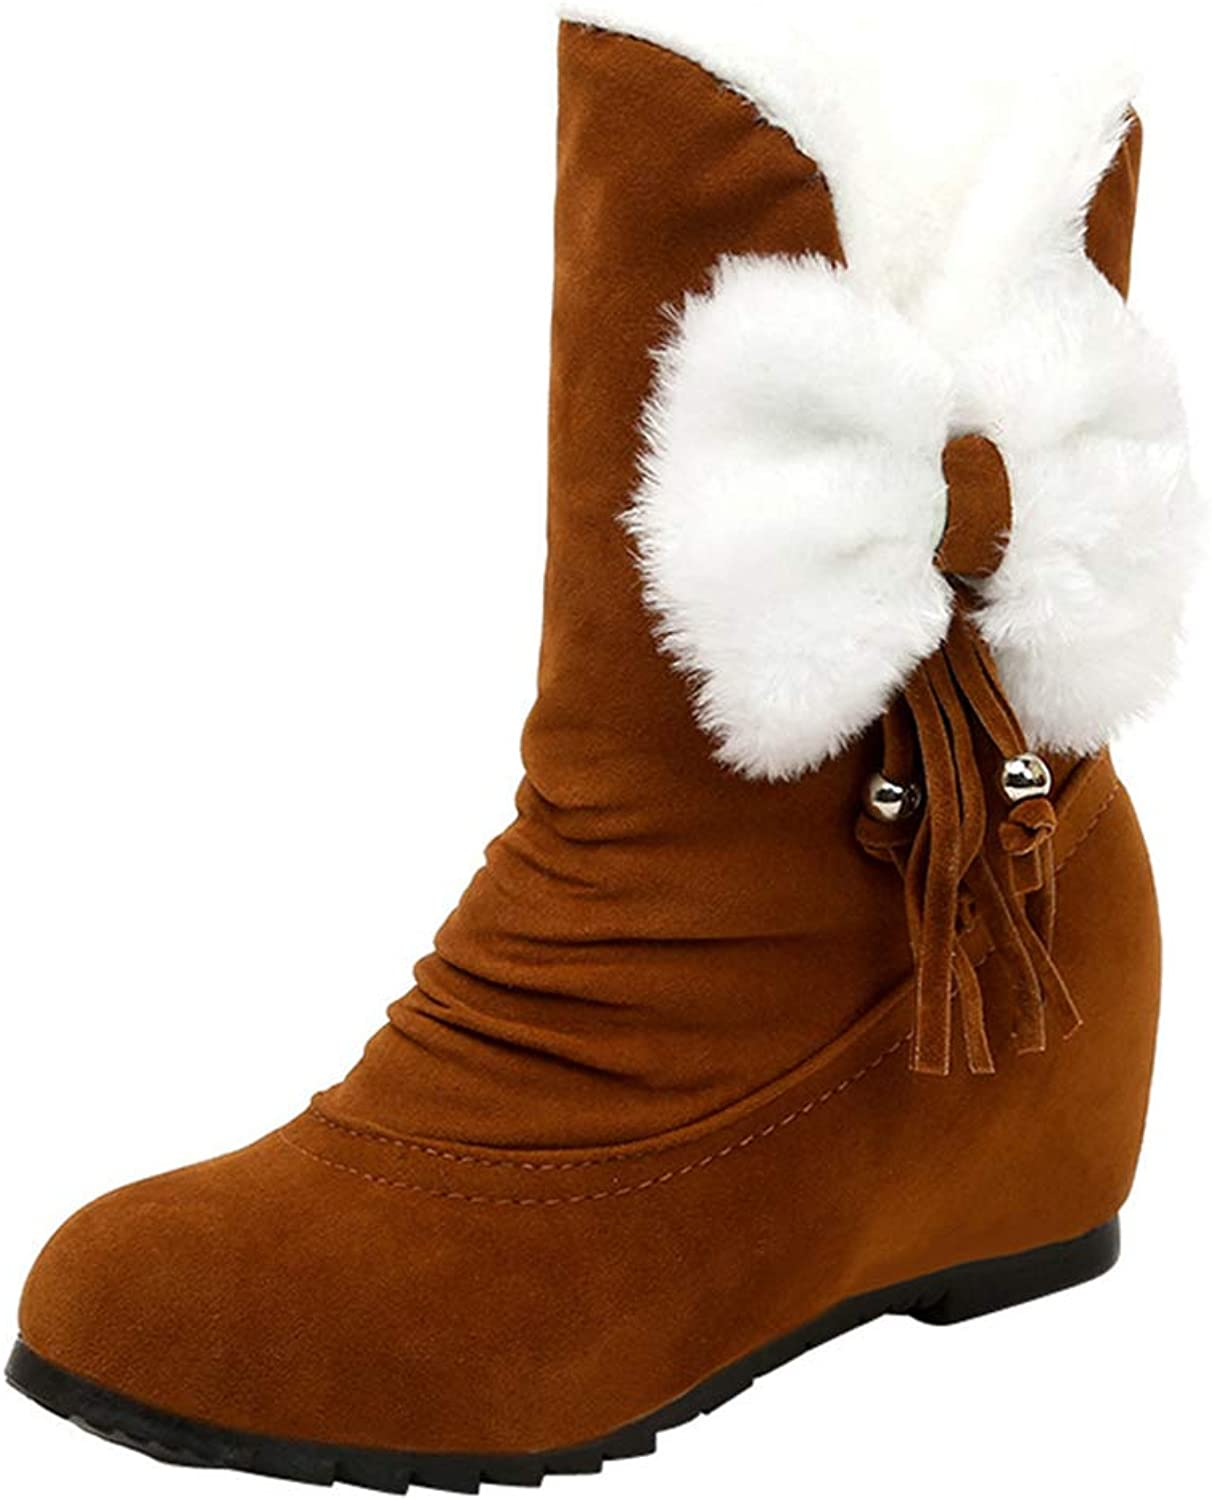 Zarbrina Womens Fleece Fur Lined Mid Calf Boots Round Toe Hideen Heel Slip On Casual Short Plush Flock Snow shoes